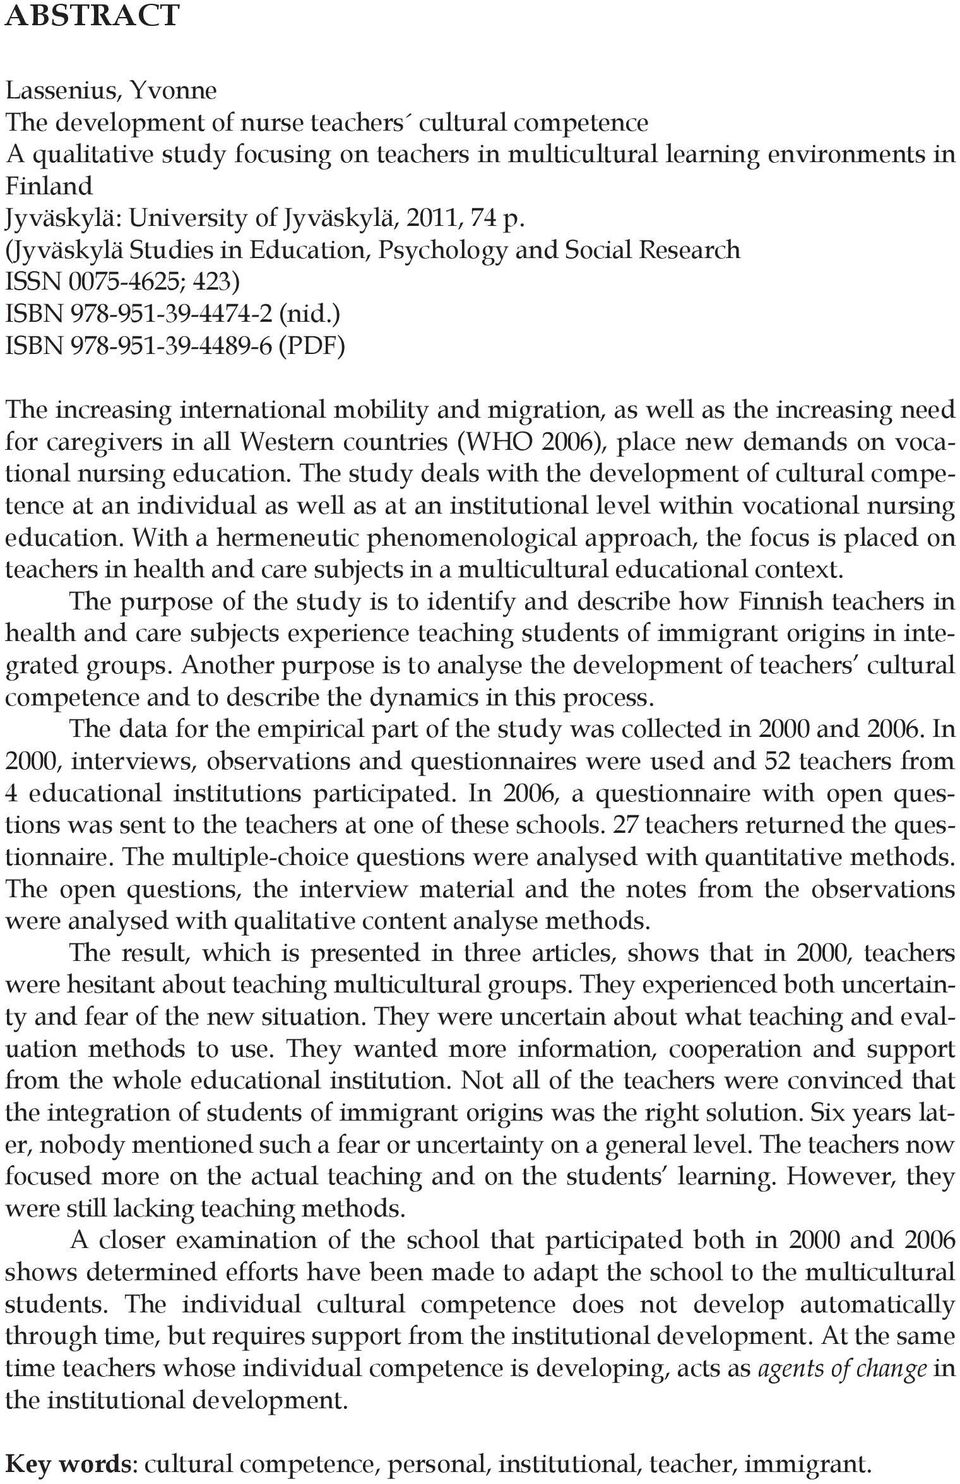 ) ISBN 978-951-39-4489-6 (PDF) The increasing international mobility and migration, as well as the increasing need for caregivers in all Western countries (WHO 2006), place new demands on vocational